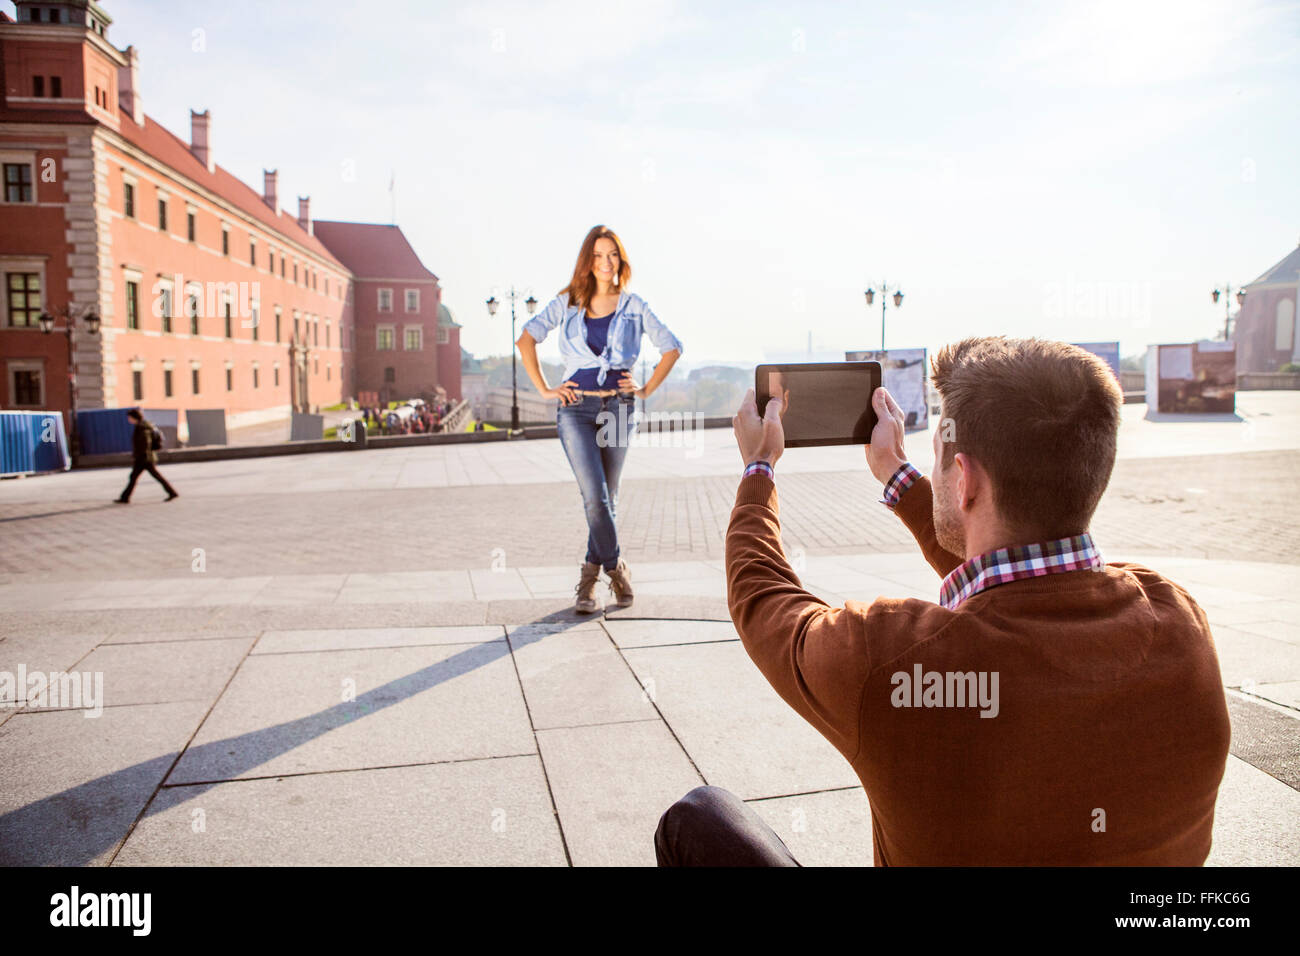 Mid adult man taking a picture of girlfriend - Stock Image